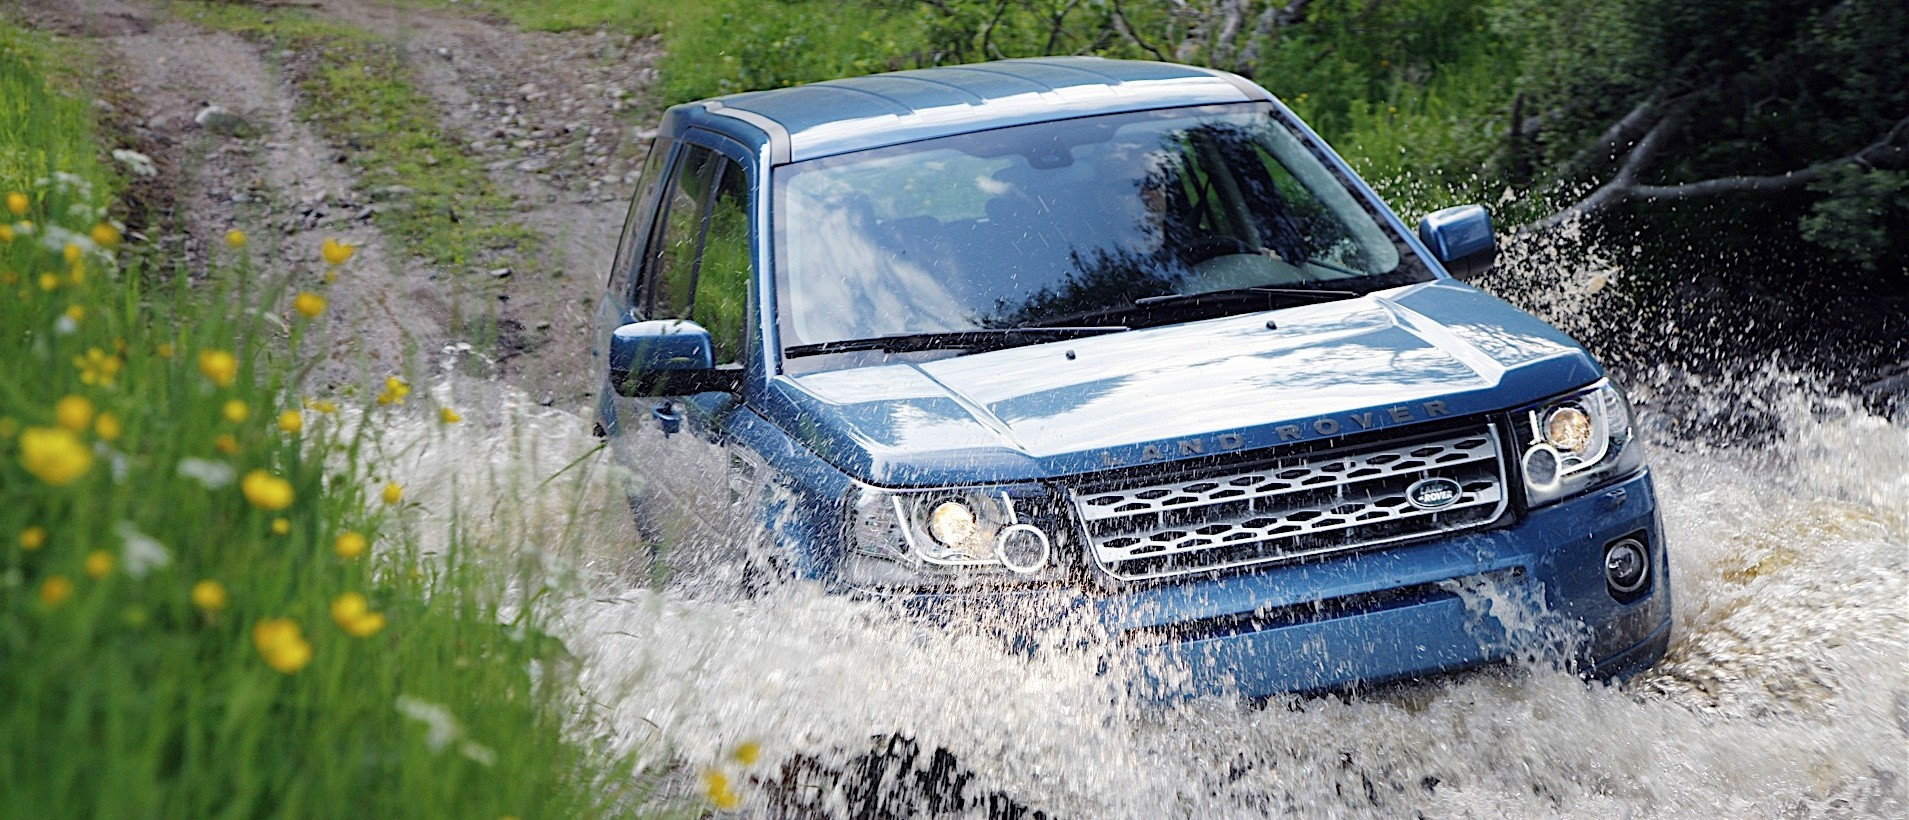 Land Rovers 4x4 Systems A Brief Guide Autoevolution Rover Lr2 2009 Wiring Diagram My 2013 Freelander